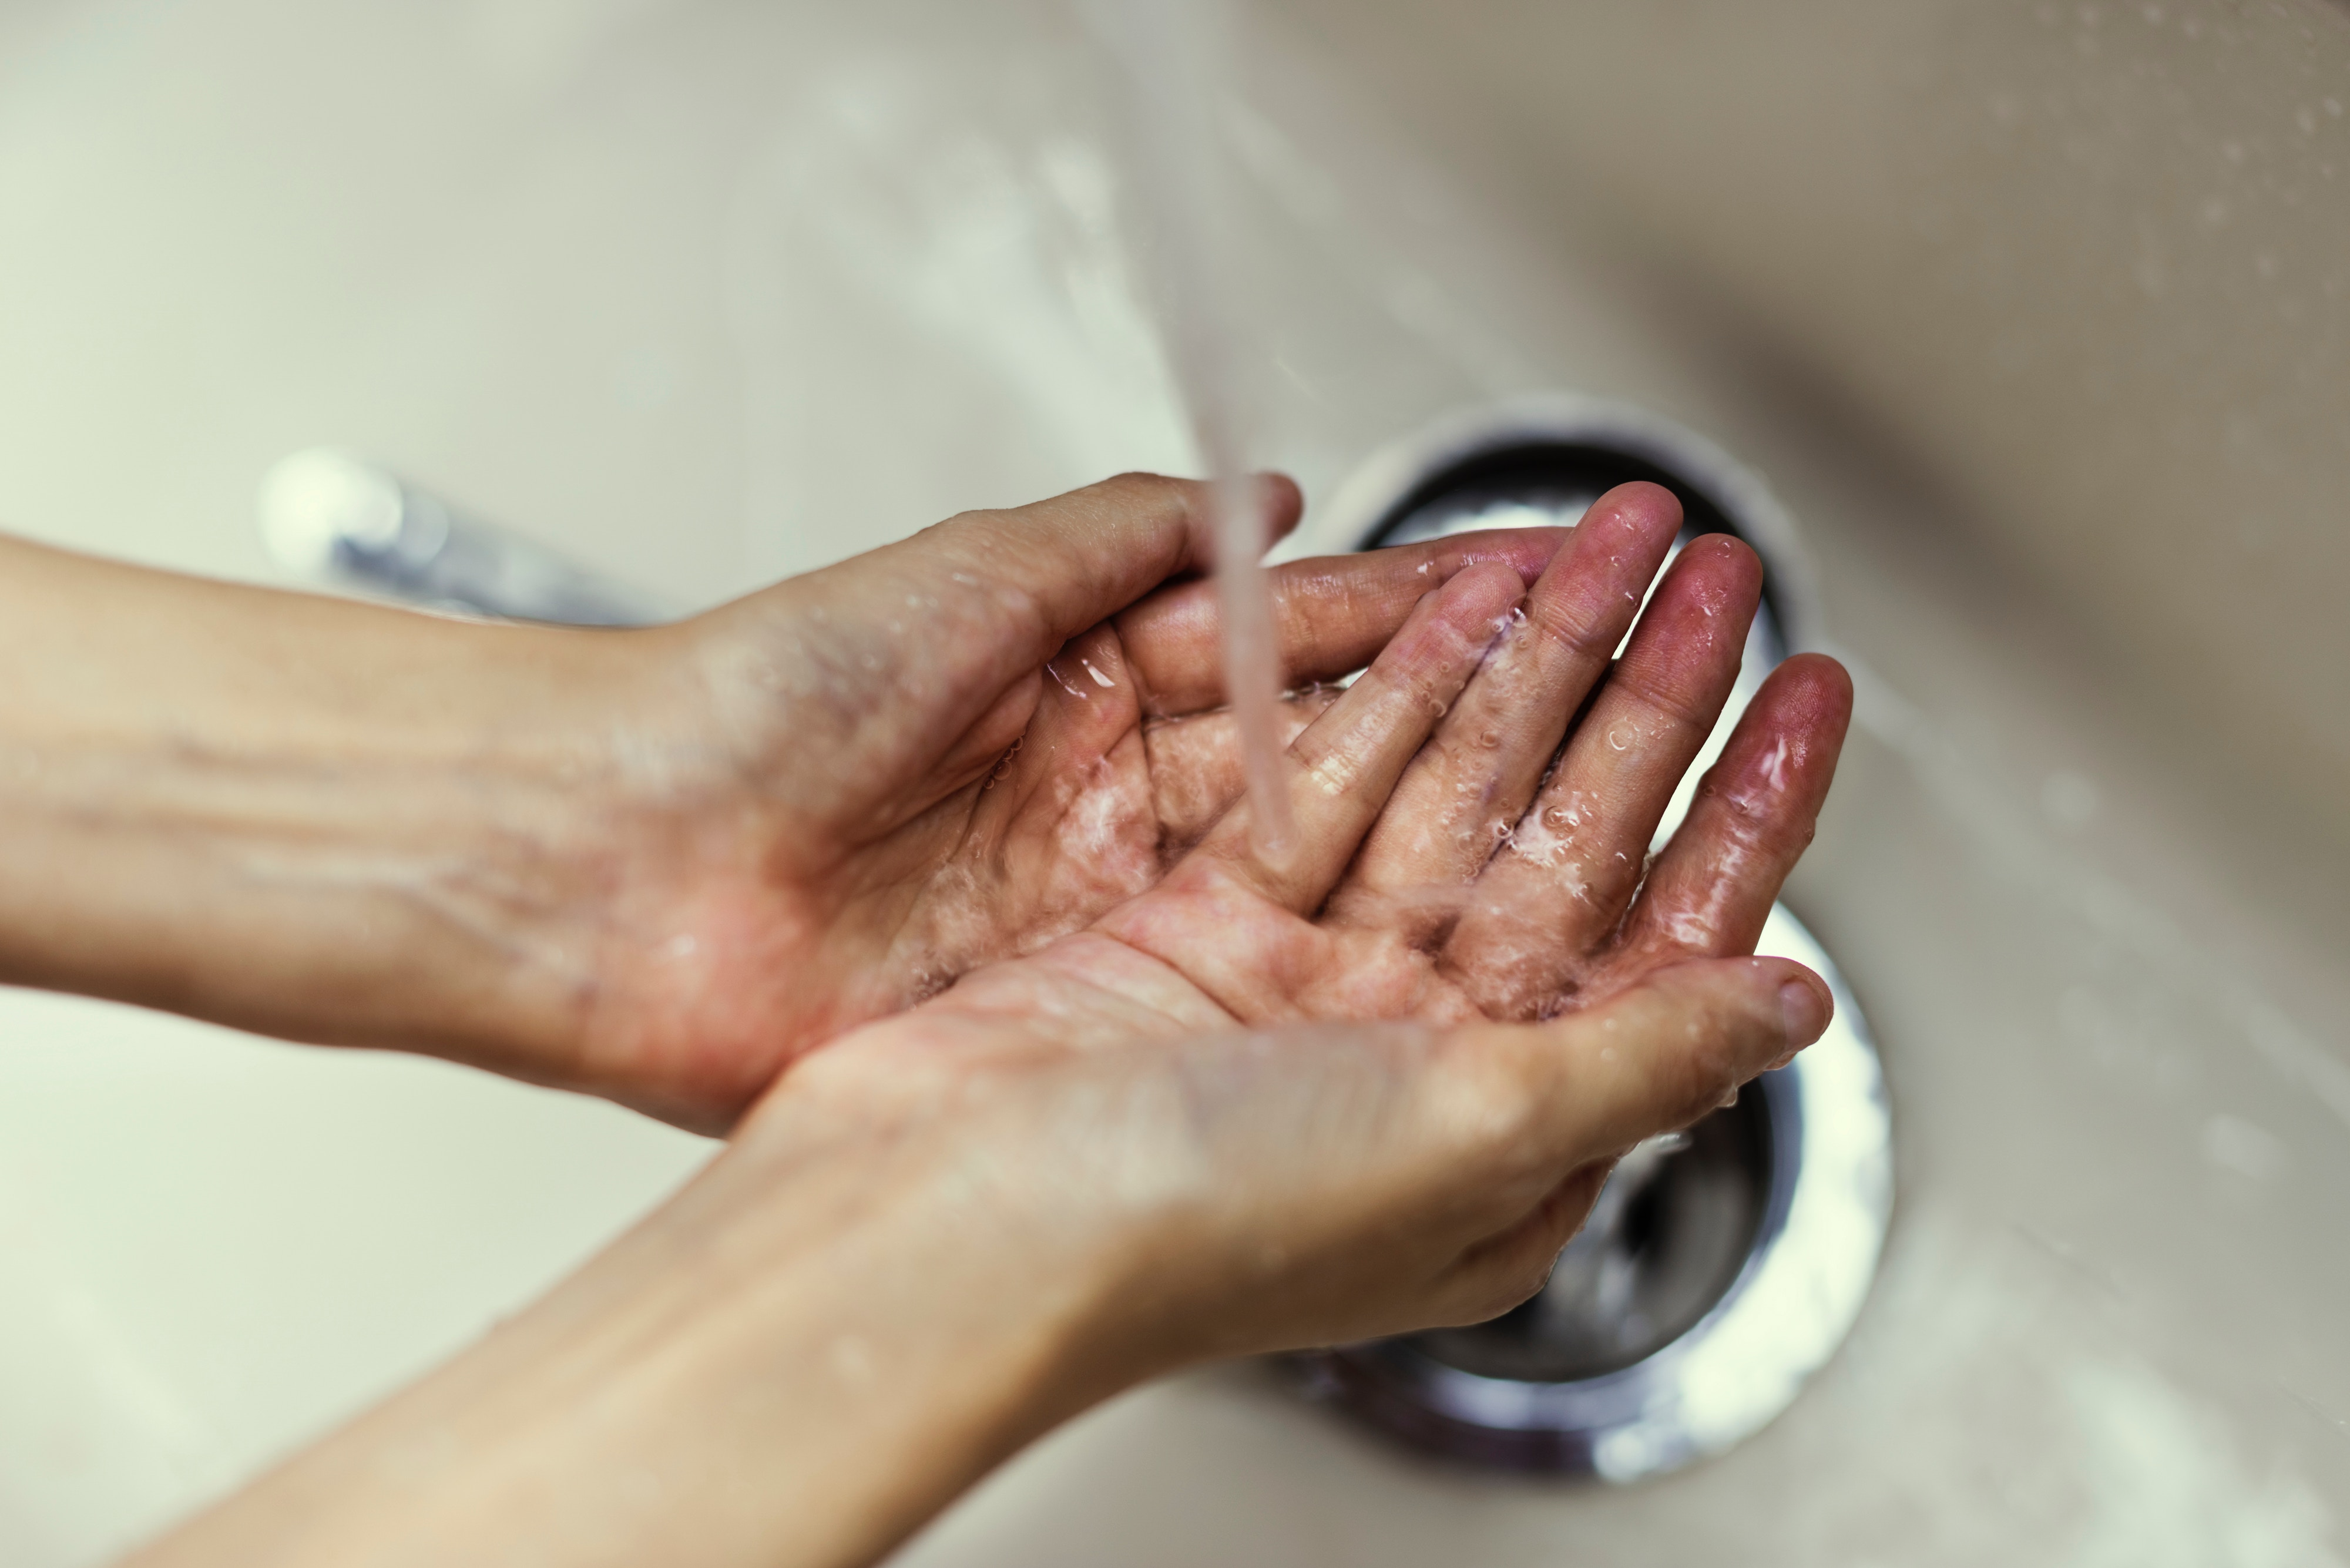 What We Need to Know About OCD - PsychAlive